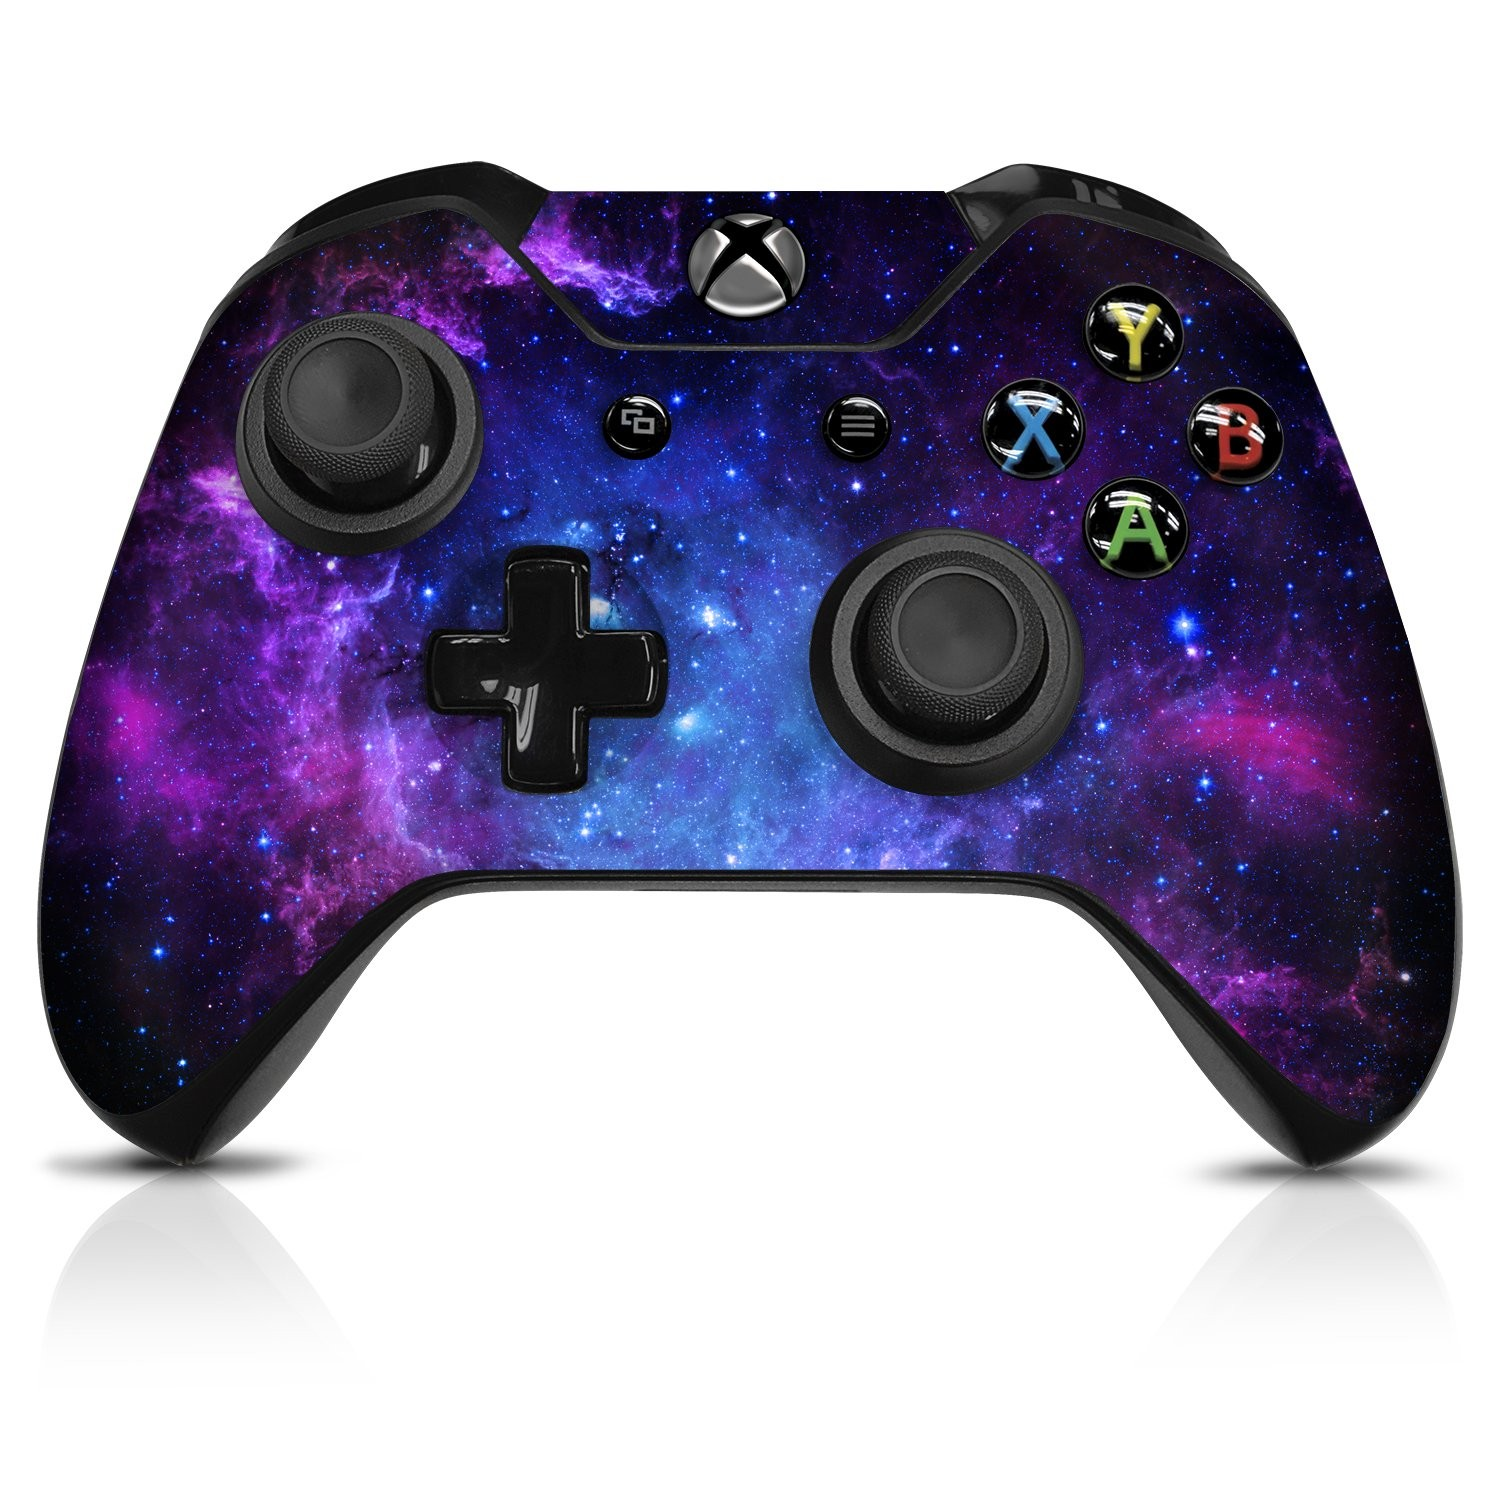 Space Two  Xbox One Controller Skin - Officially Licensed by Xbox - Controller Gear